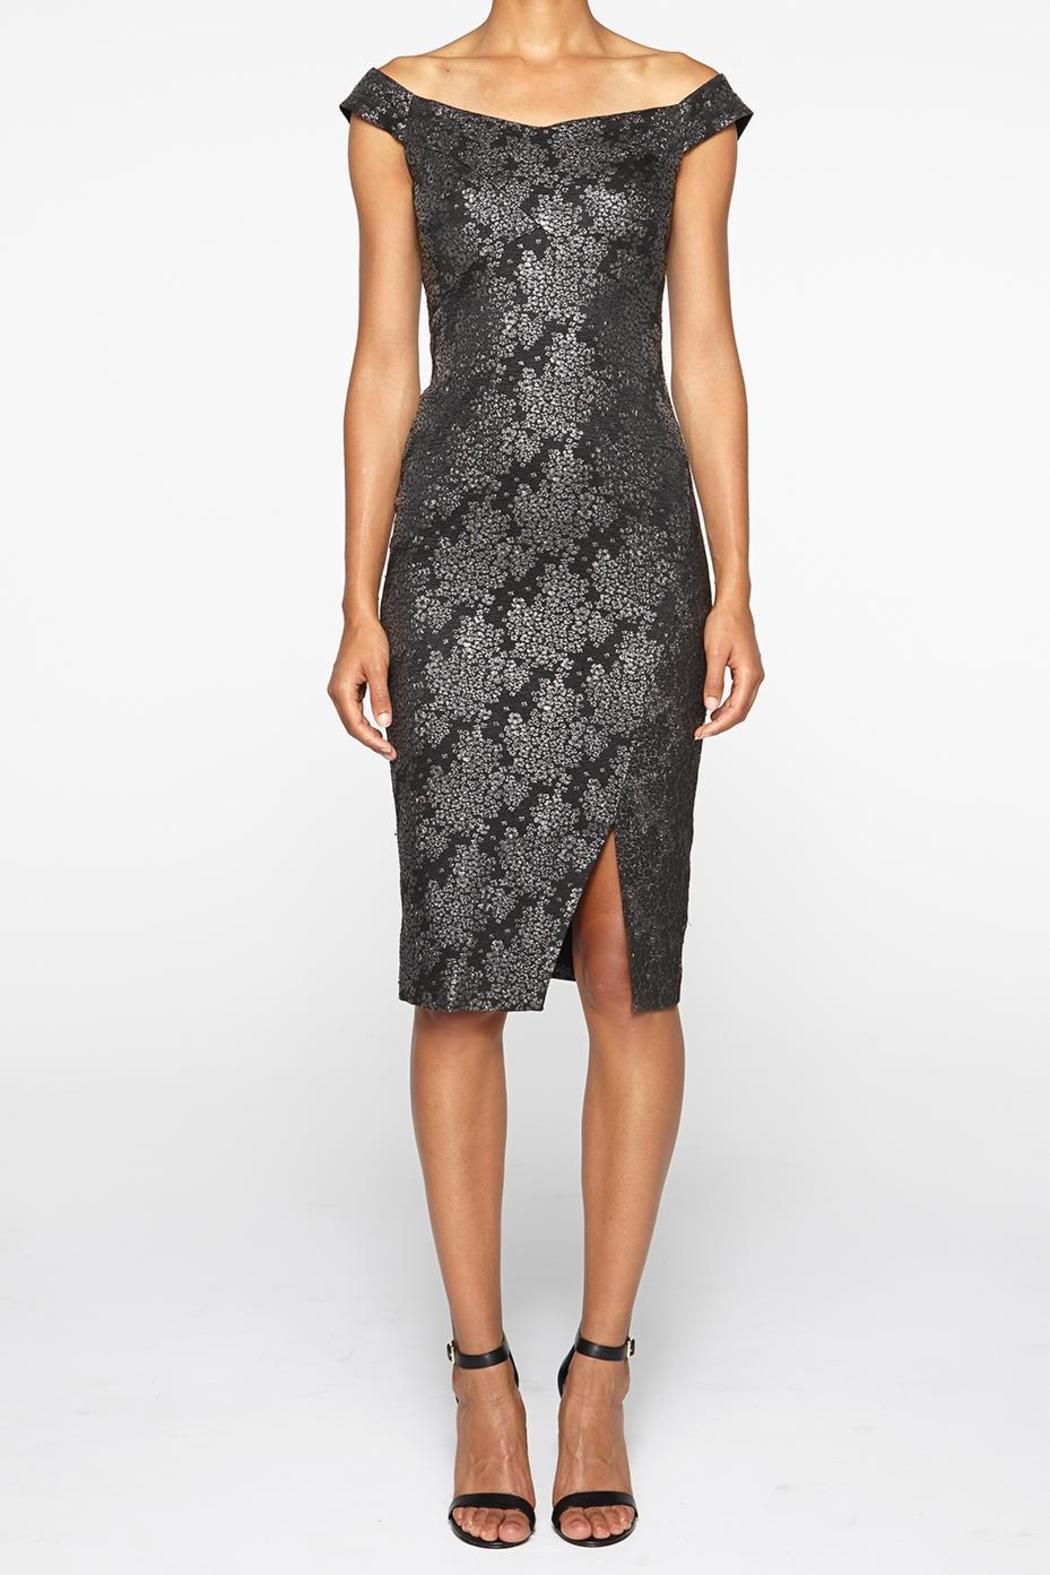 Nicole Miller Boutique Exclusive Brocade Tail Dress Front Cropped Image